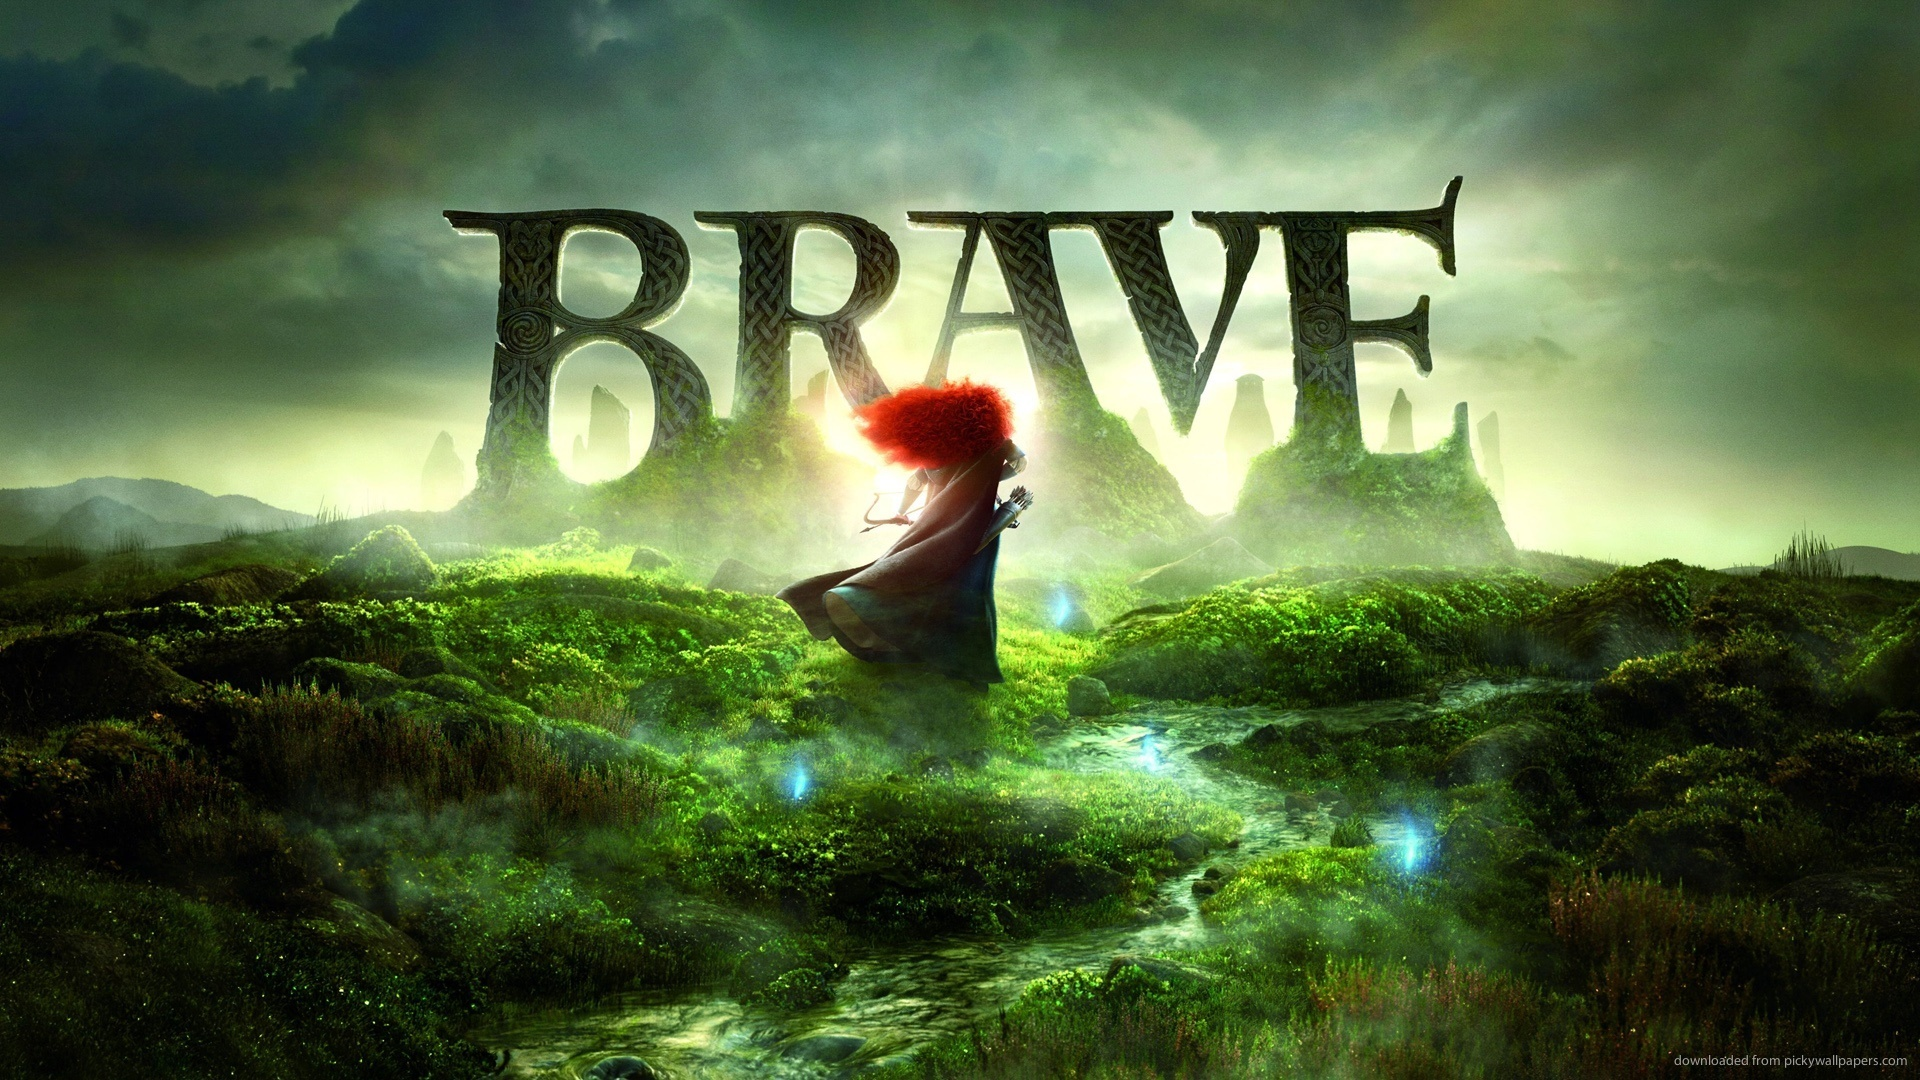 Download Brave Animated Movie Poster HD Wallpaper Search more high 1920x1080